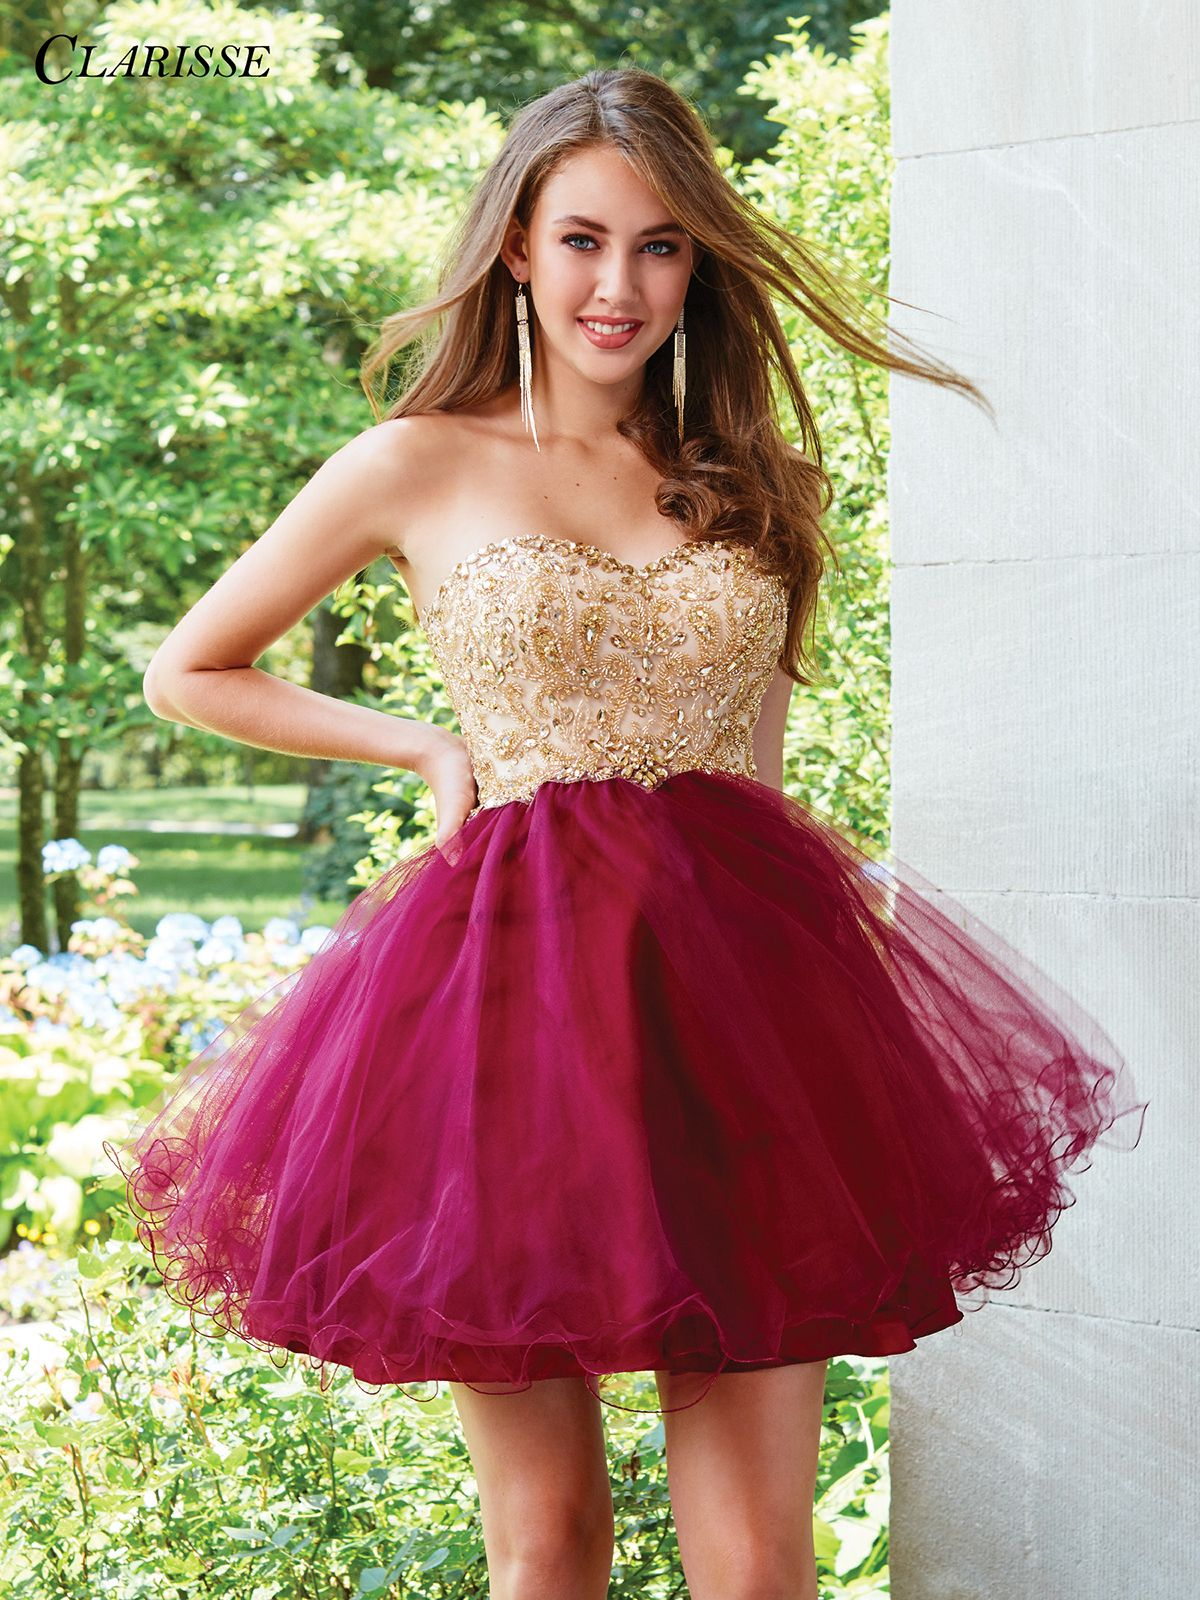 08703758a9 This dress is absolutely adorable for a Bat Mitzvah girl! The tulle skirt  is young and fun while the beading adds to the overall formality of the  dress.